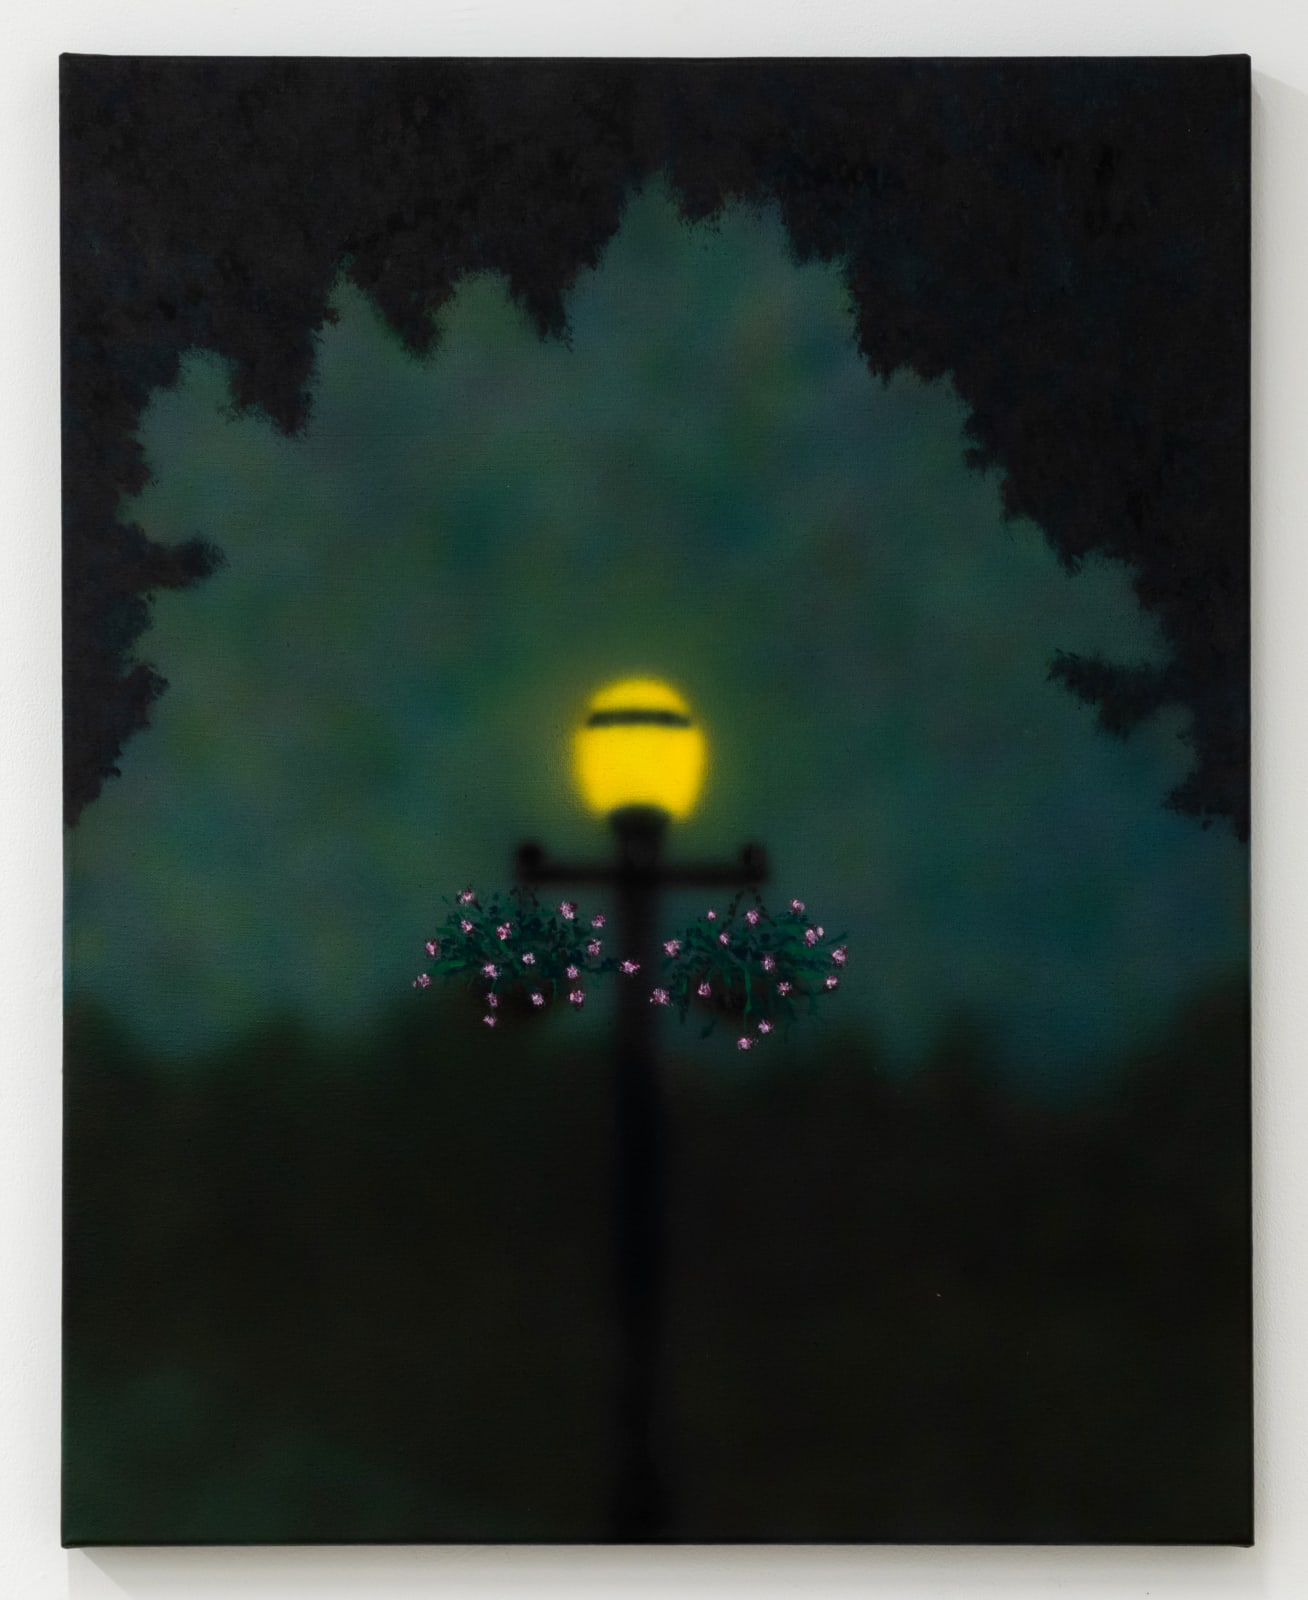 Sung Hwa Kim, Nocturne: On the day when your long night ends, I will be there, 2021